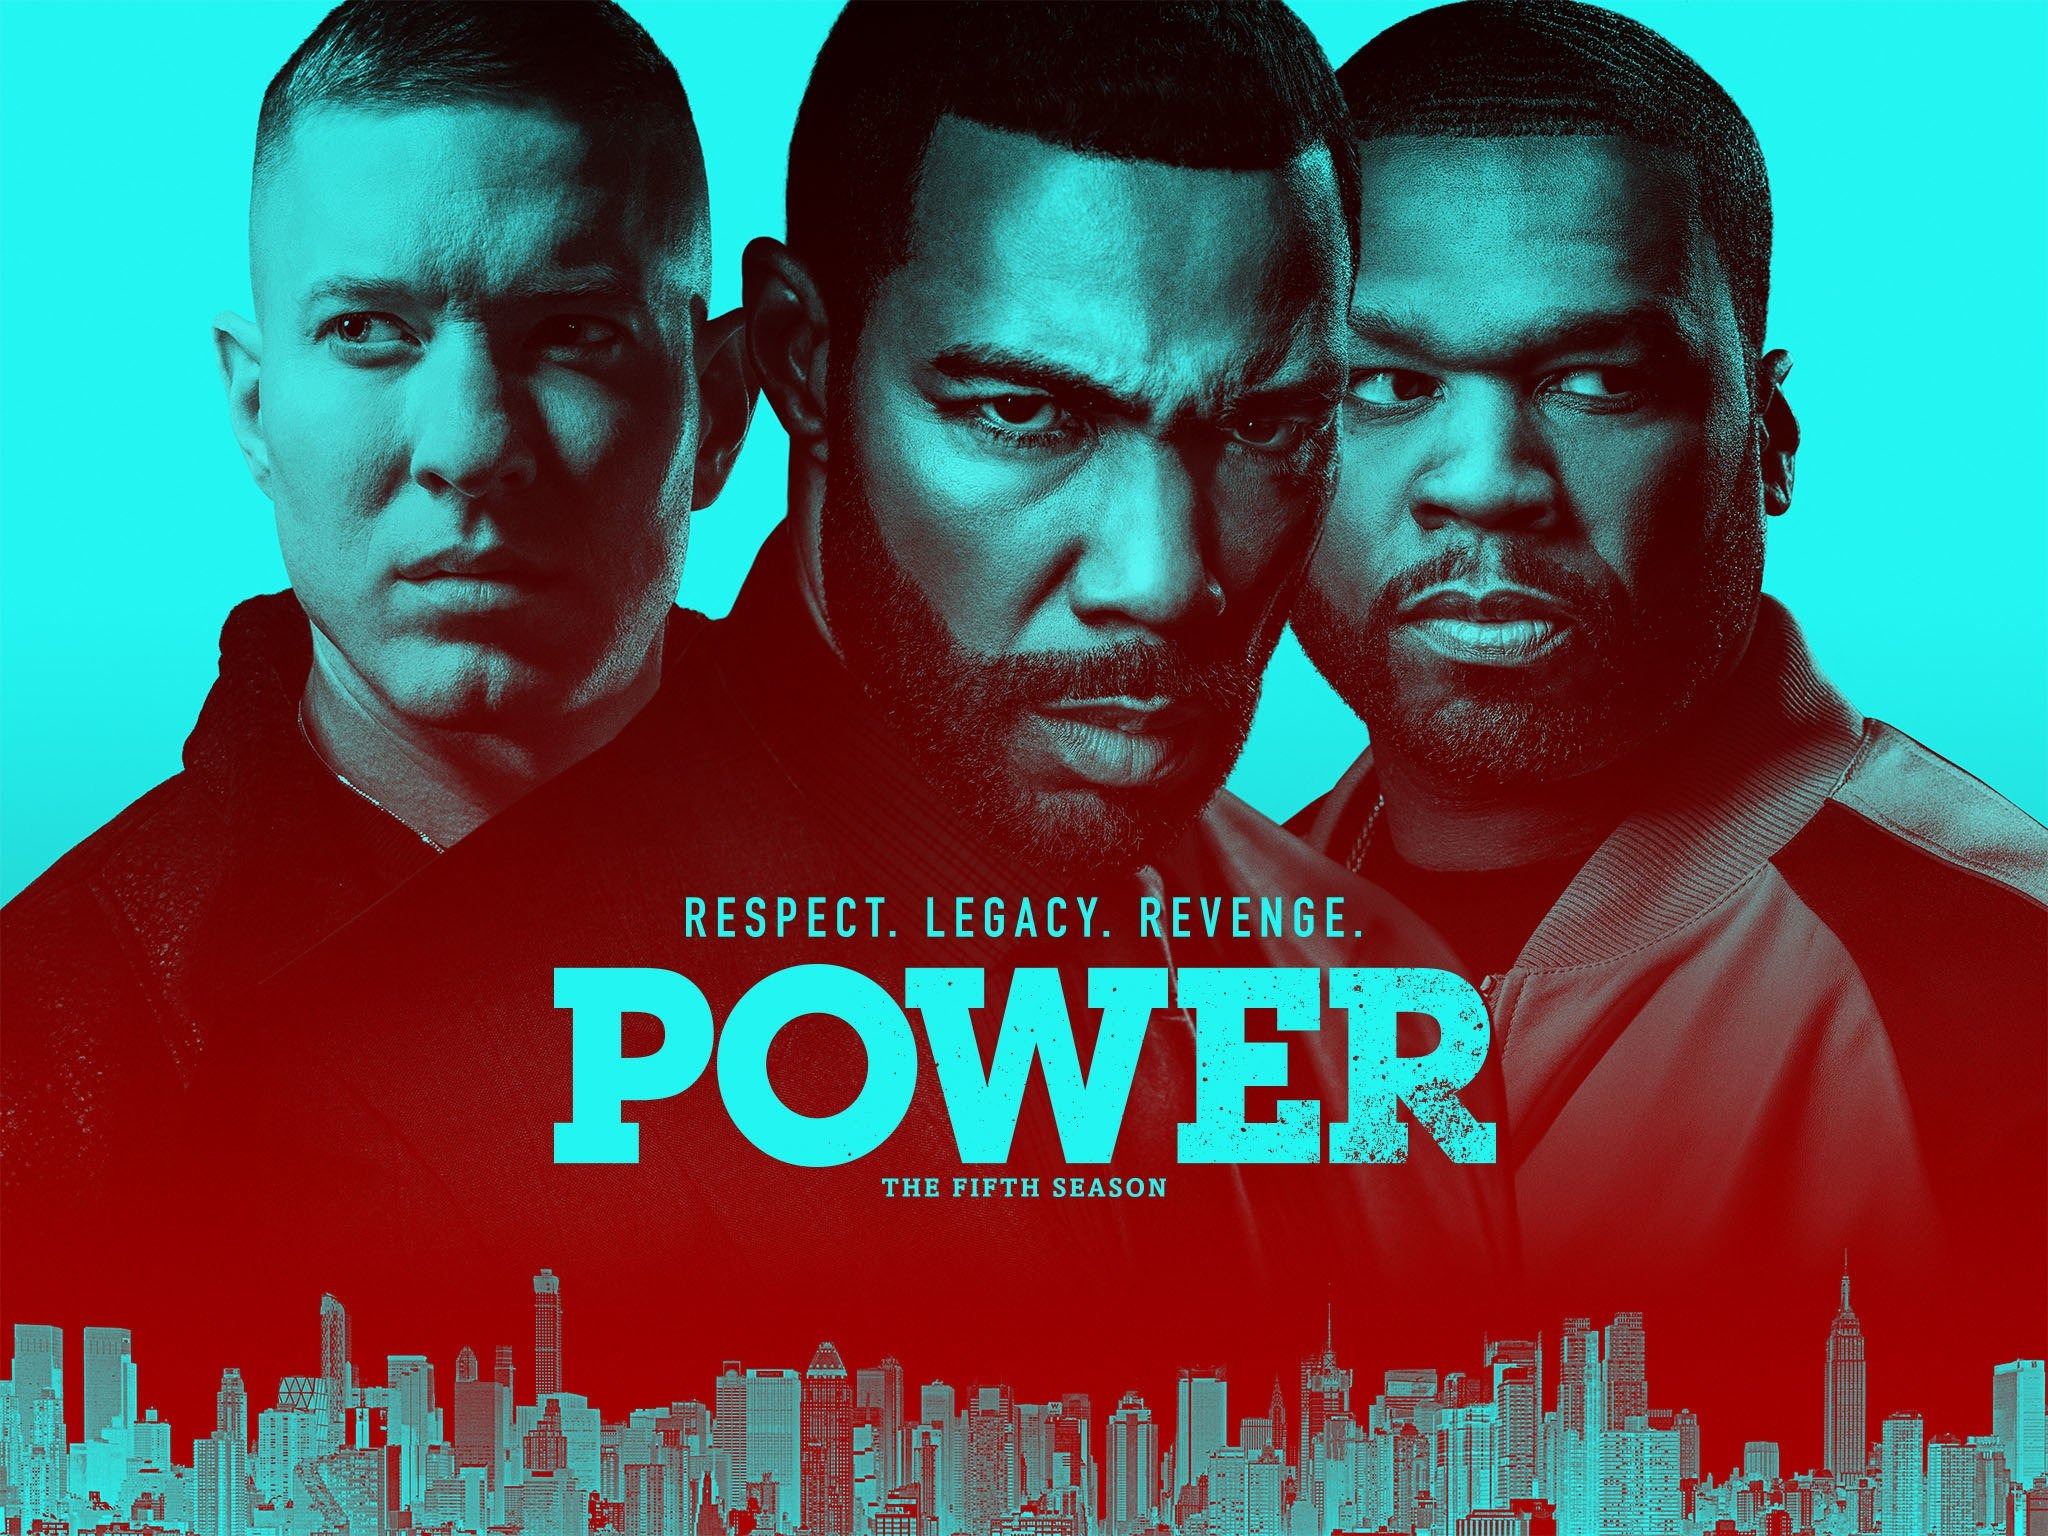 Poweris an Americancrimedramatelevision series created and produced byCourtney A. Kemp. It debuted on theStarznetwork on June 7, 2014, and has run for five seasons.[1][2]It tells the story of James St. Patrick (Omari Hardwick), a ruthless drug-dealer under the nickname